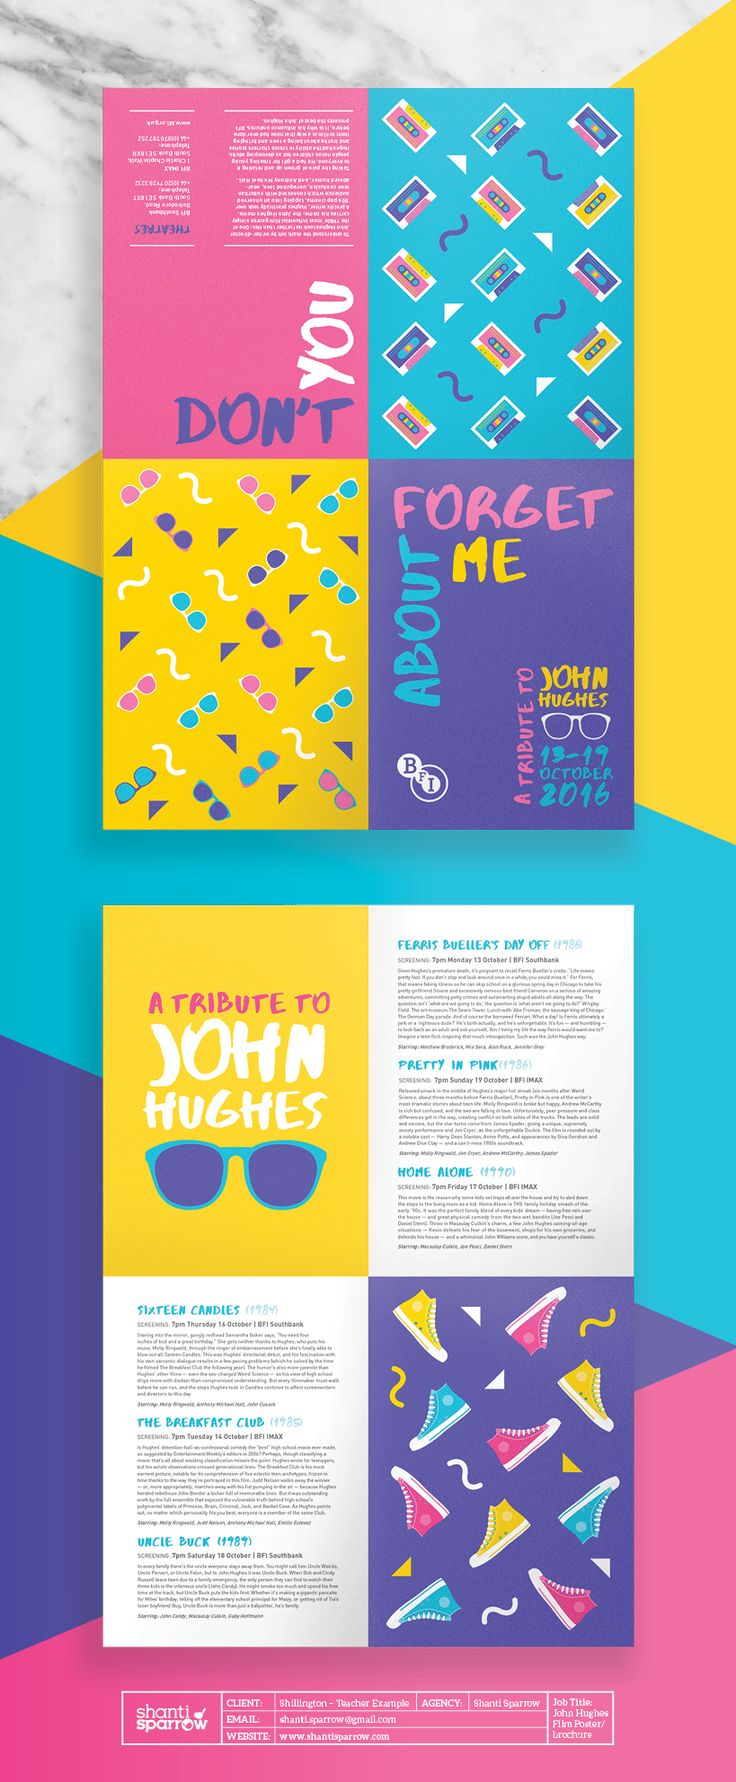 Design by Shanti Sparrow www.shantisparrow.com Client: Shillington Project Name: Brochure Poster Film BFI #Design #graphicdesign #illustration #layout #magazine #typography #branding #packaging #logo #graphics #identity #graphic #designinspiration #inspiration #nonprofit #posterdesign #brochure #poster #brochuredesign #Filmposter #retro #80's #eighties